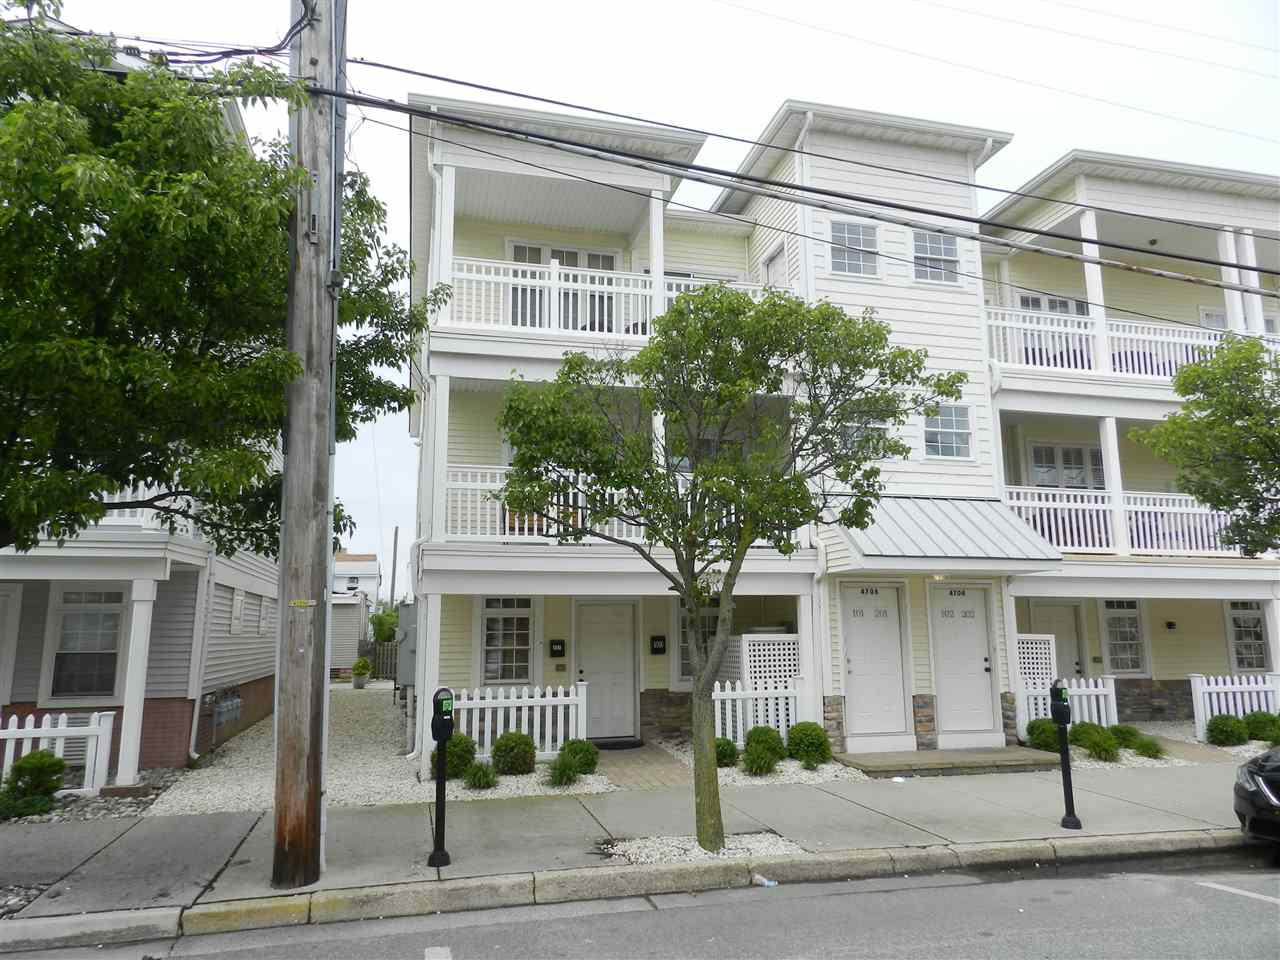 4706, Unit 101 Atlantic, Wildwood